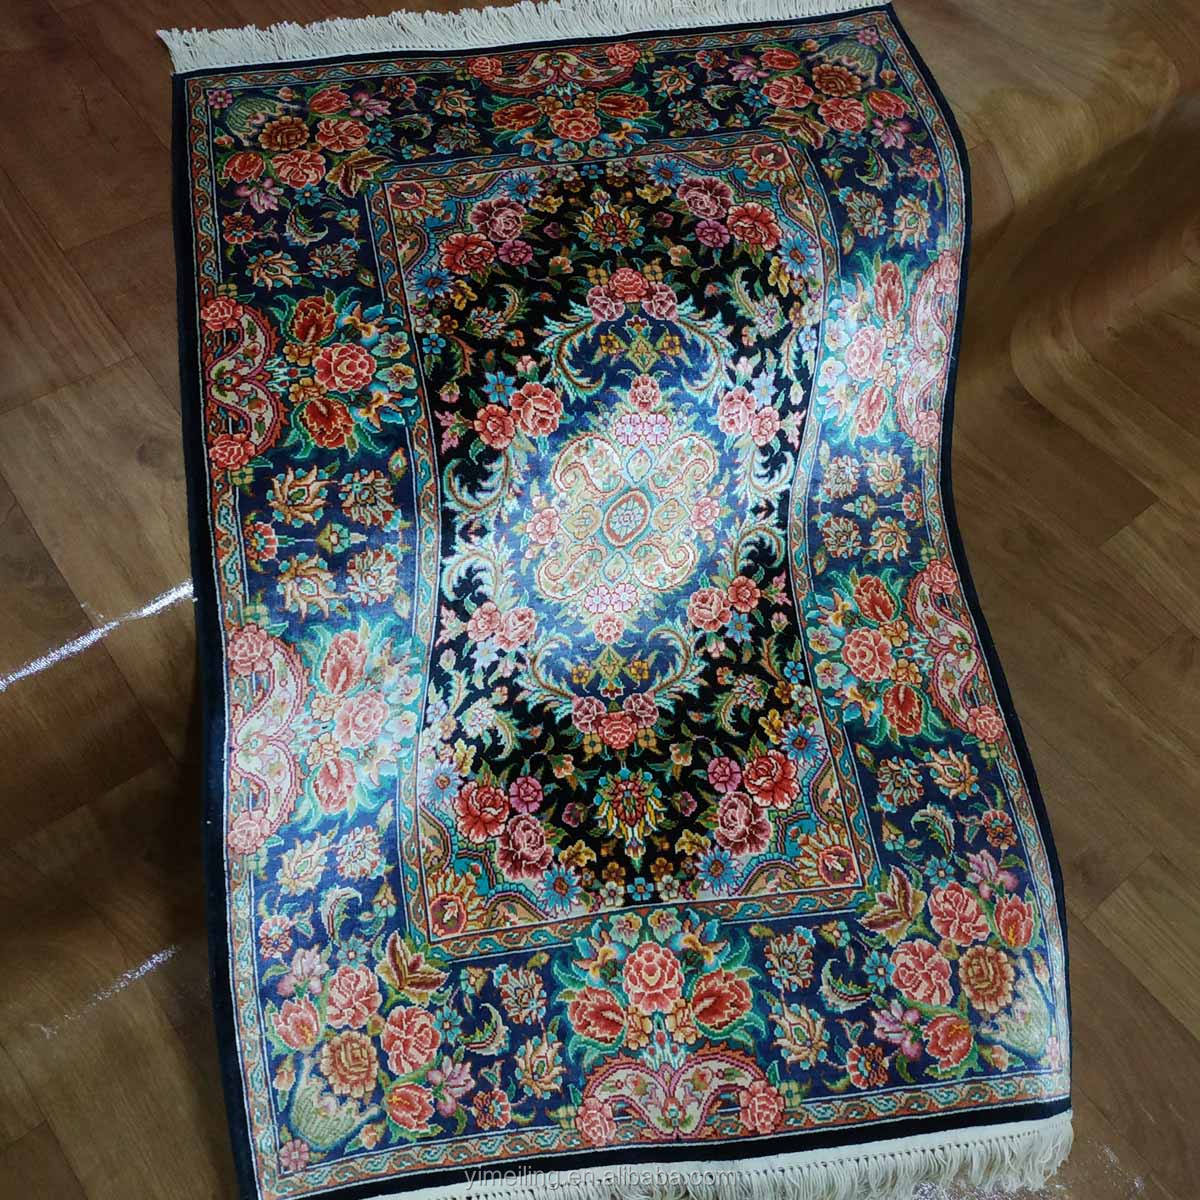 2x3 Small Entrance Size Oriental Persian Style Floral Handmade Silk Area Rugs Door Floor Carpets